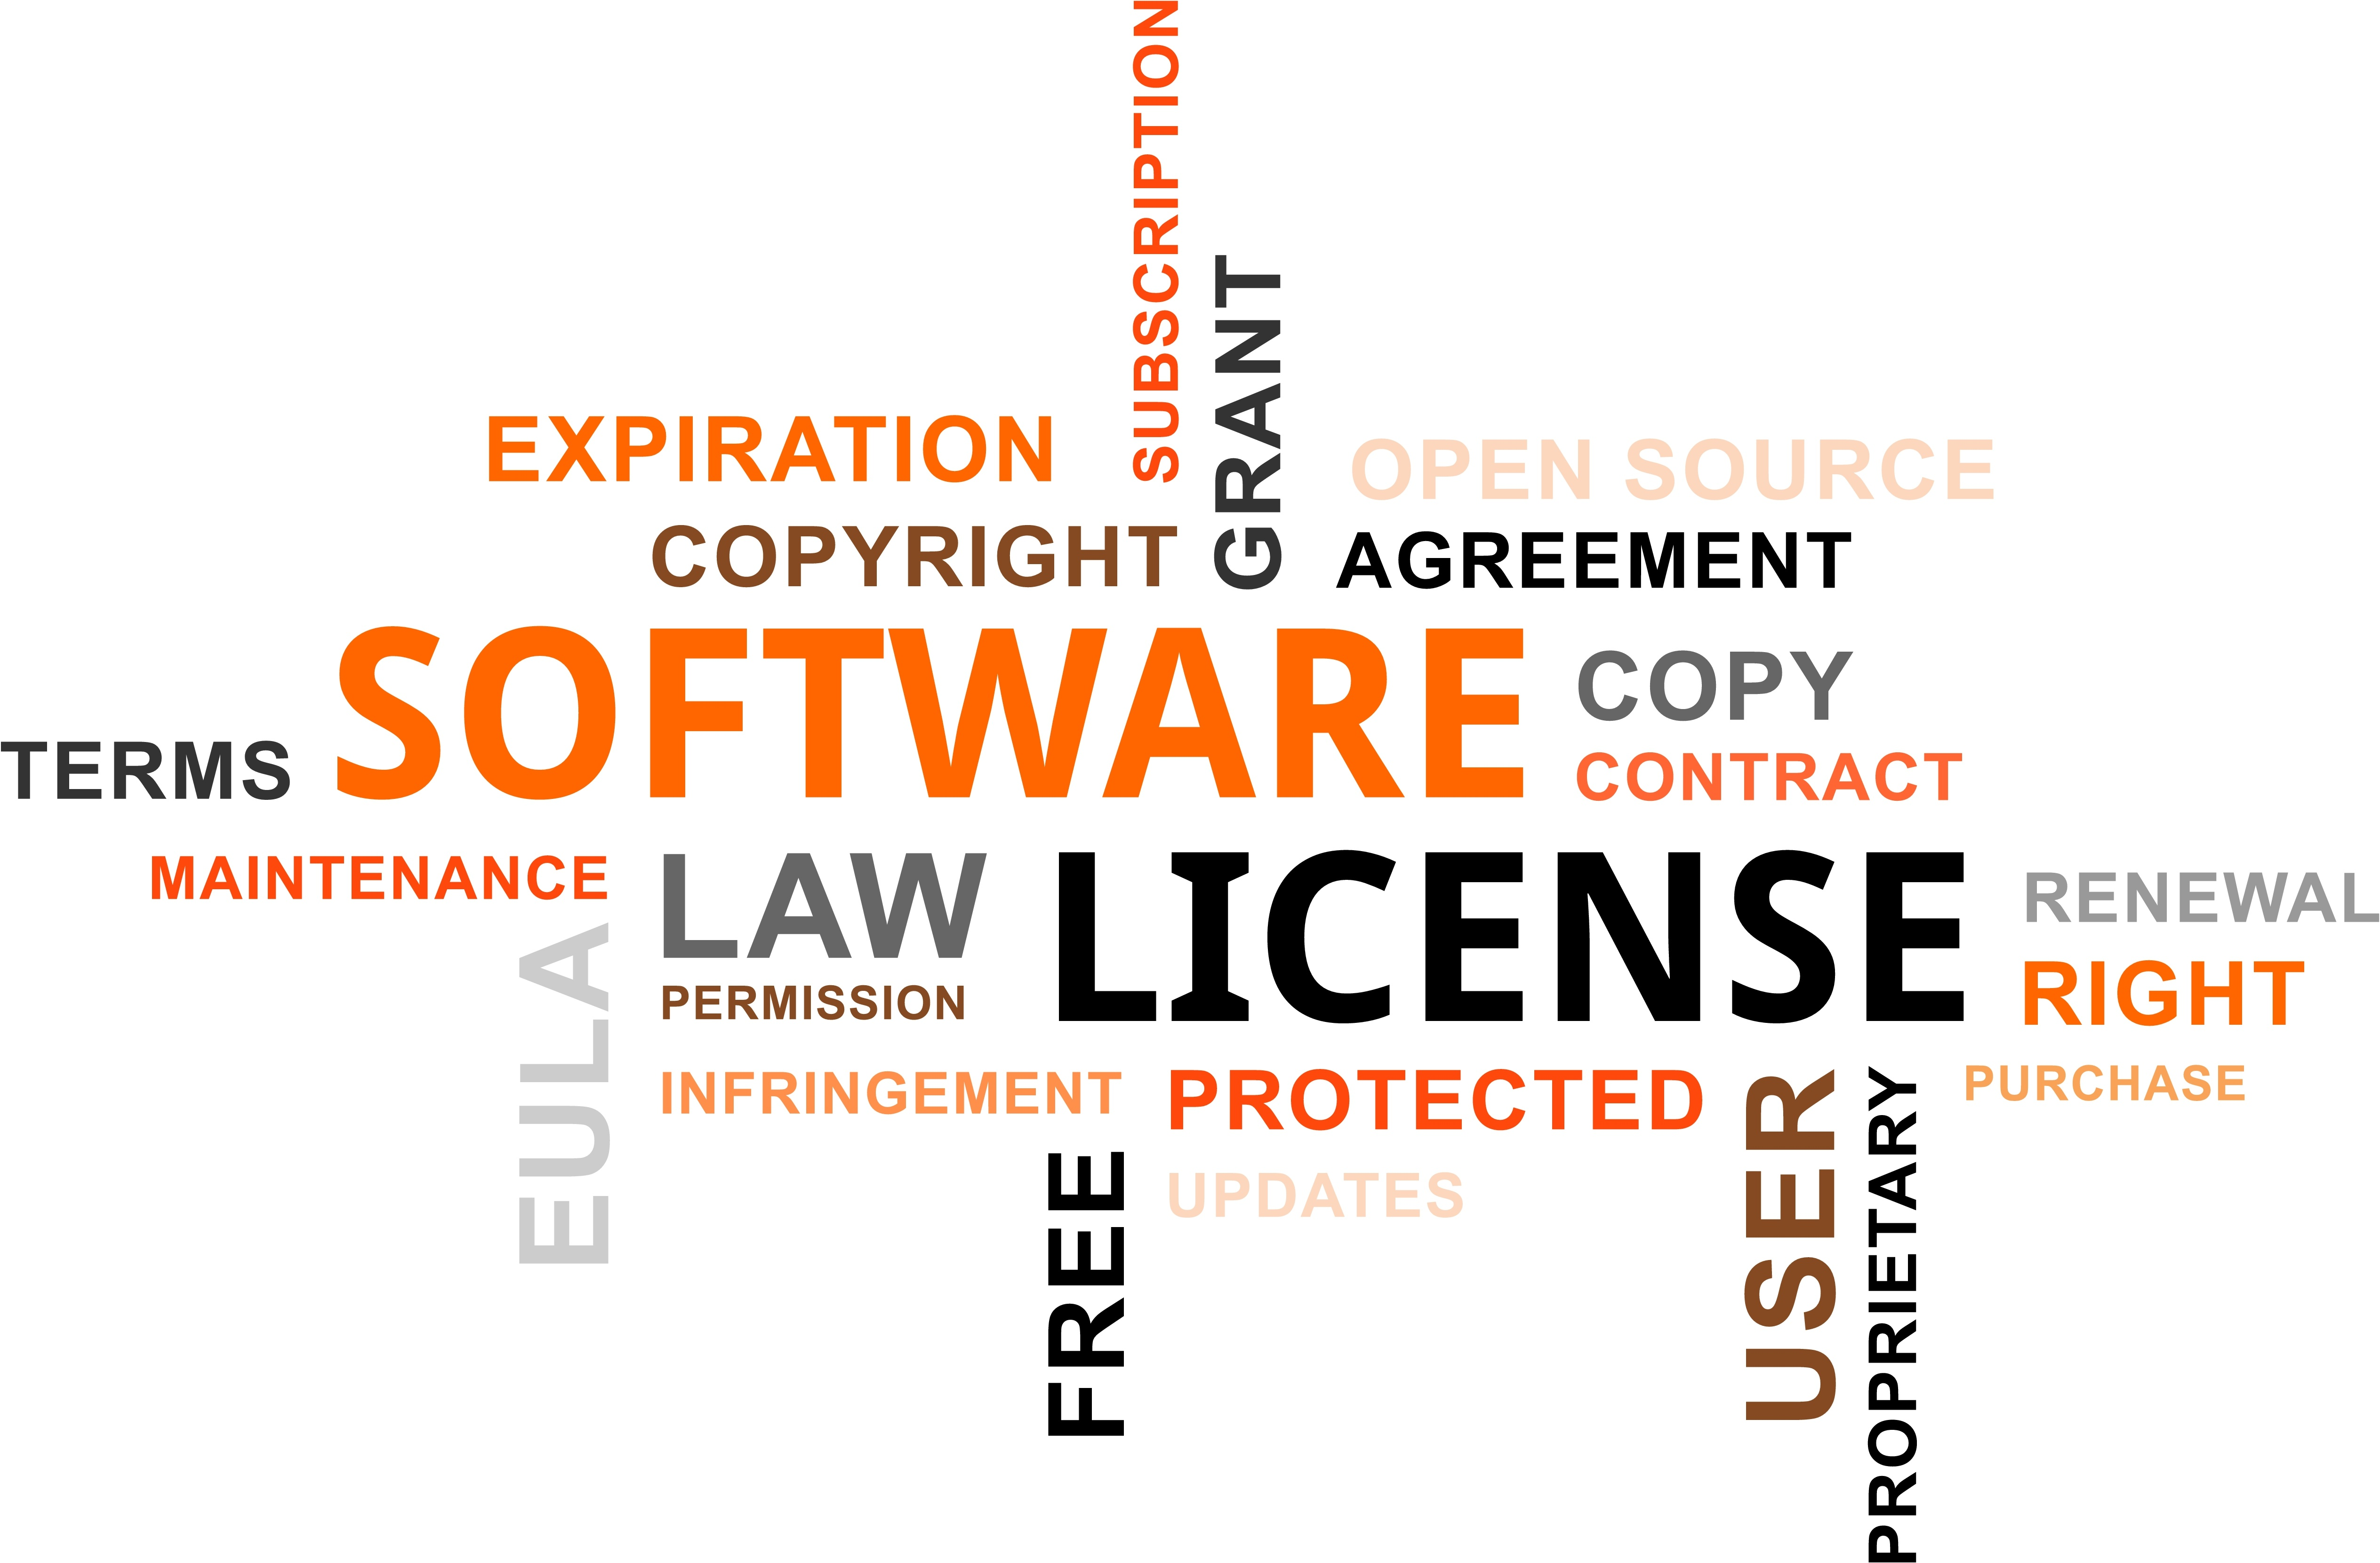 5 ways to contain software costs